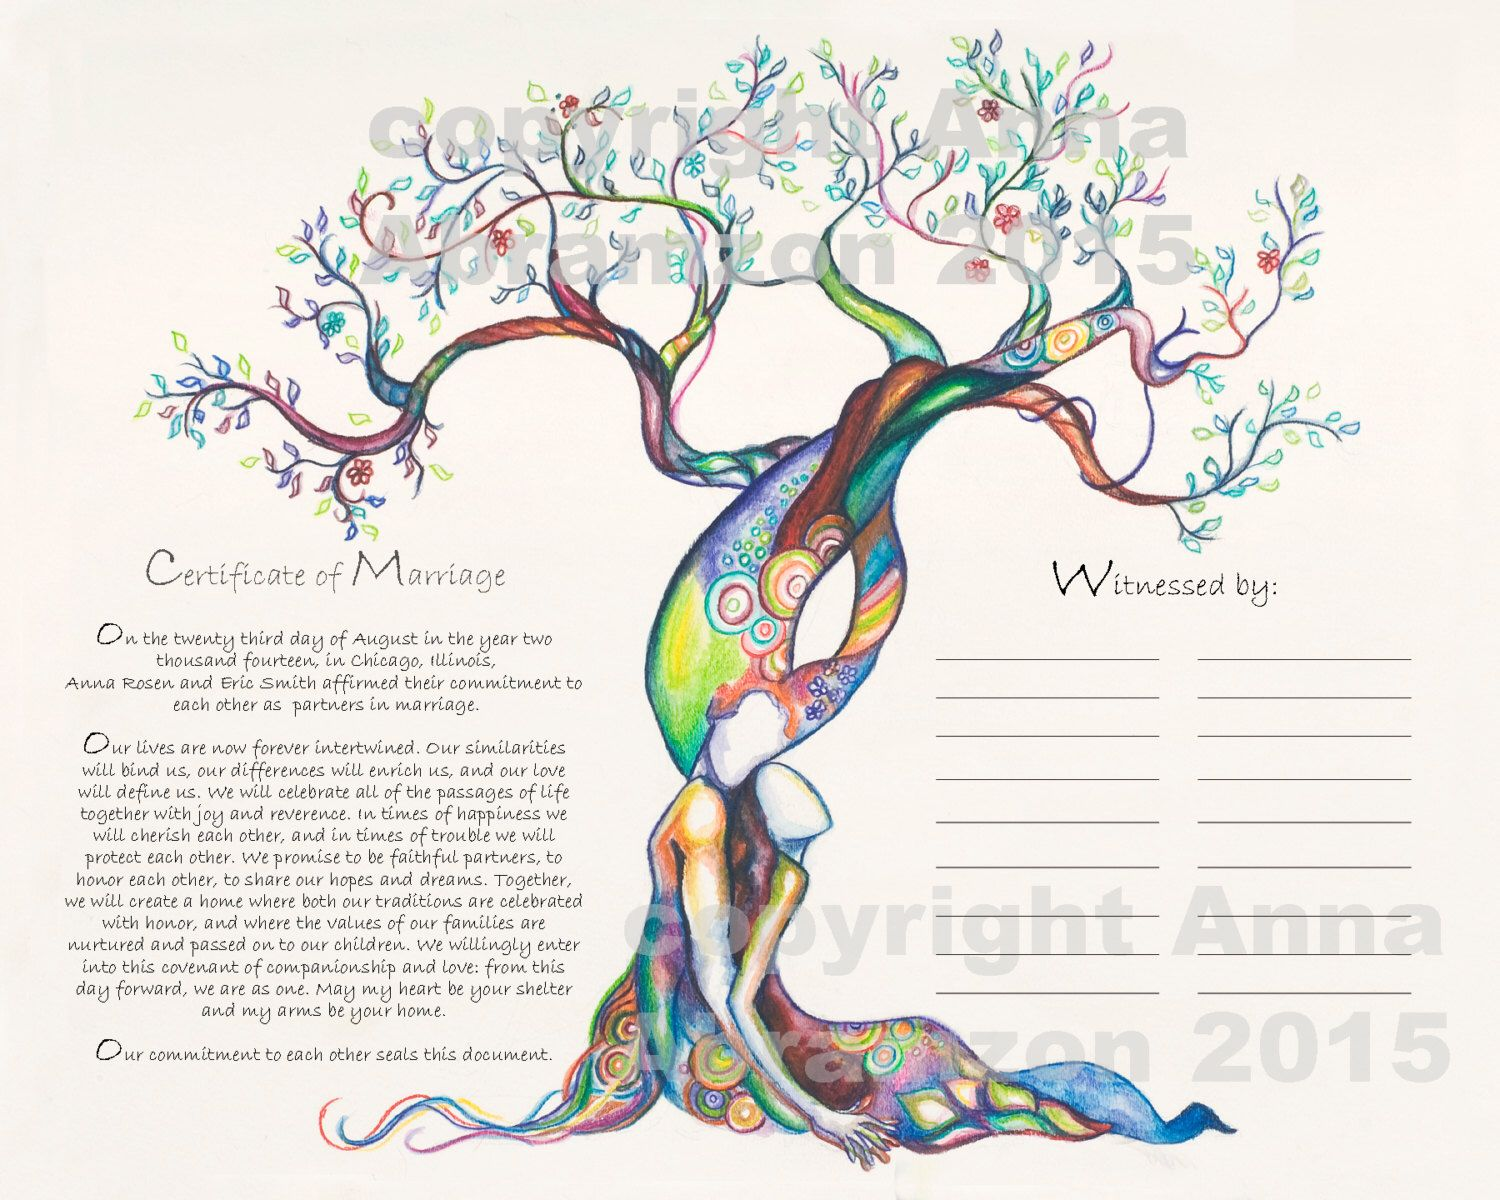 Love tree marriage certificate quaker certificate wedding vows love tree marriage certificate quaker certificate wedding vows tree of life by aastudio on etsy https 1betcityfo Gallery